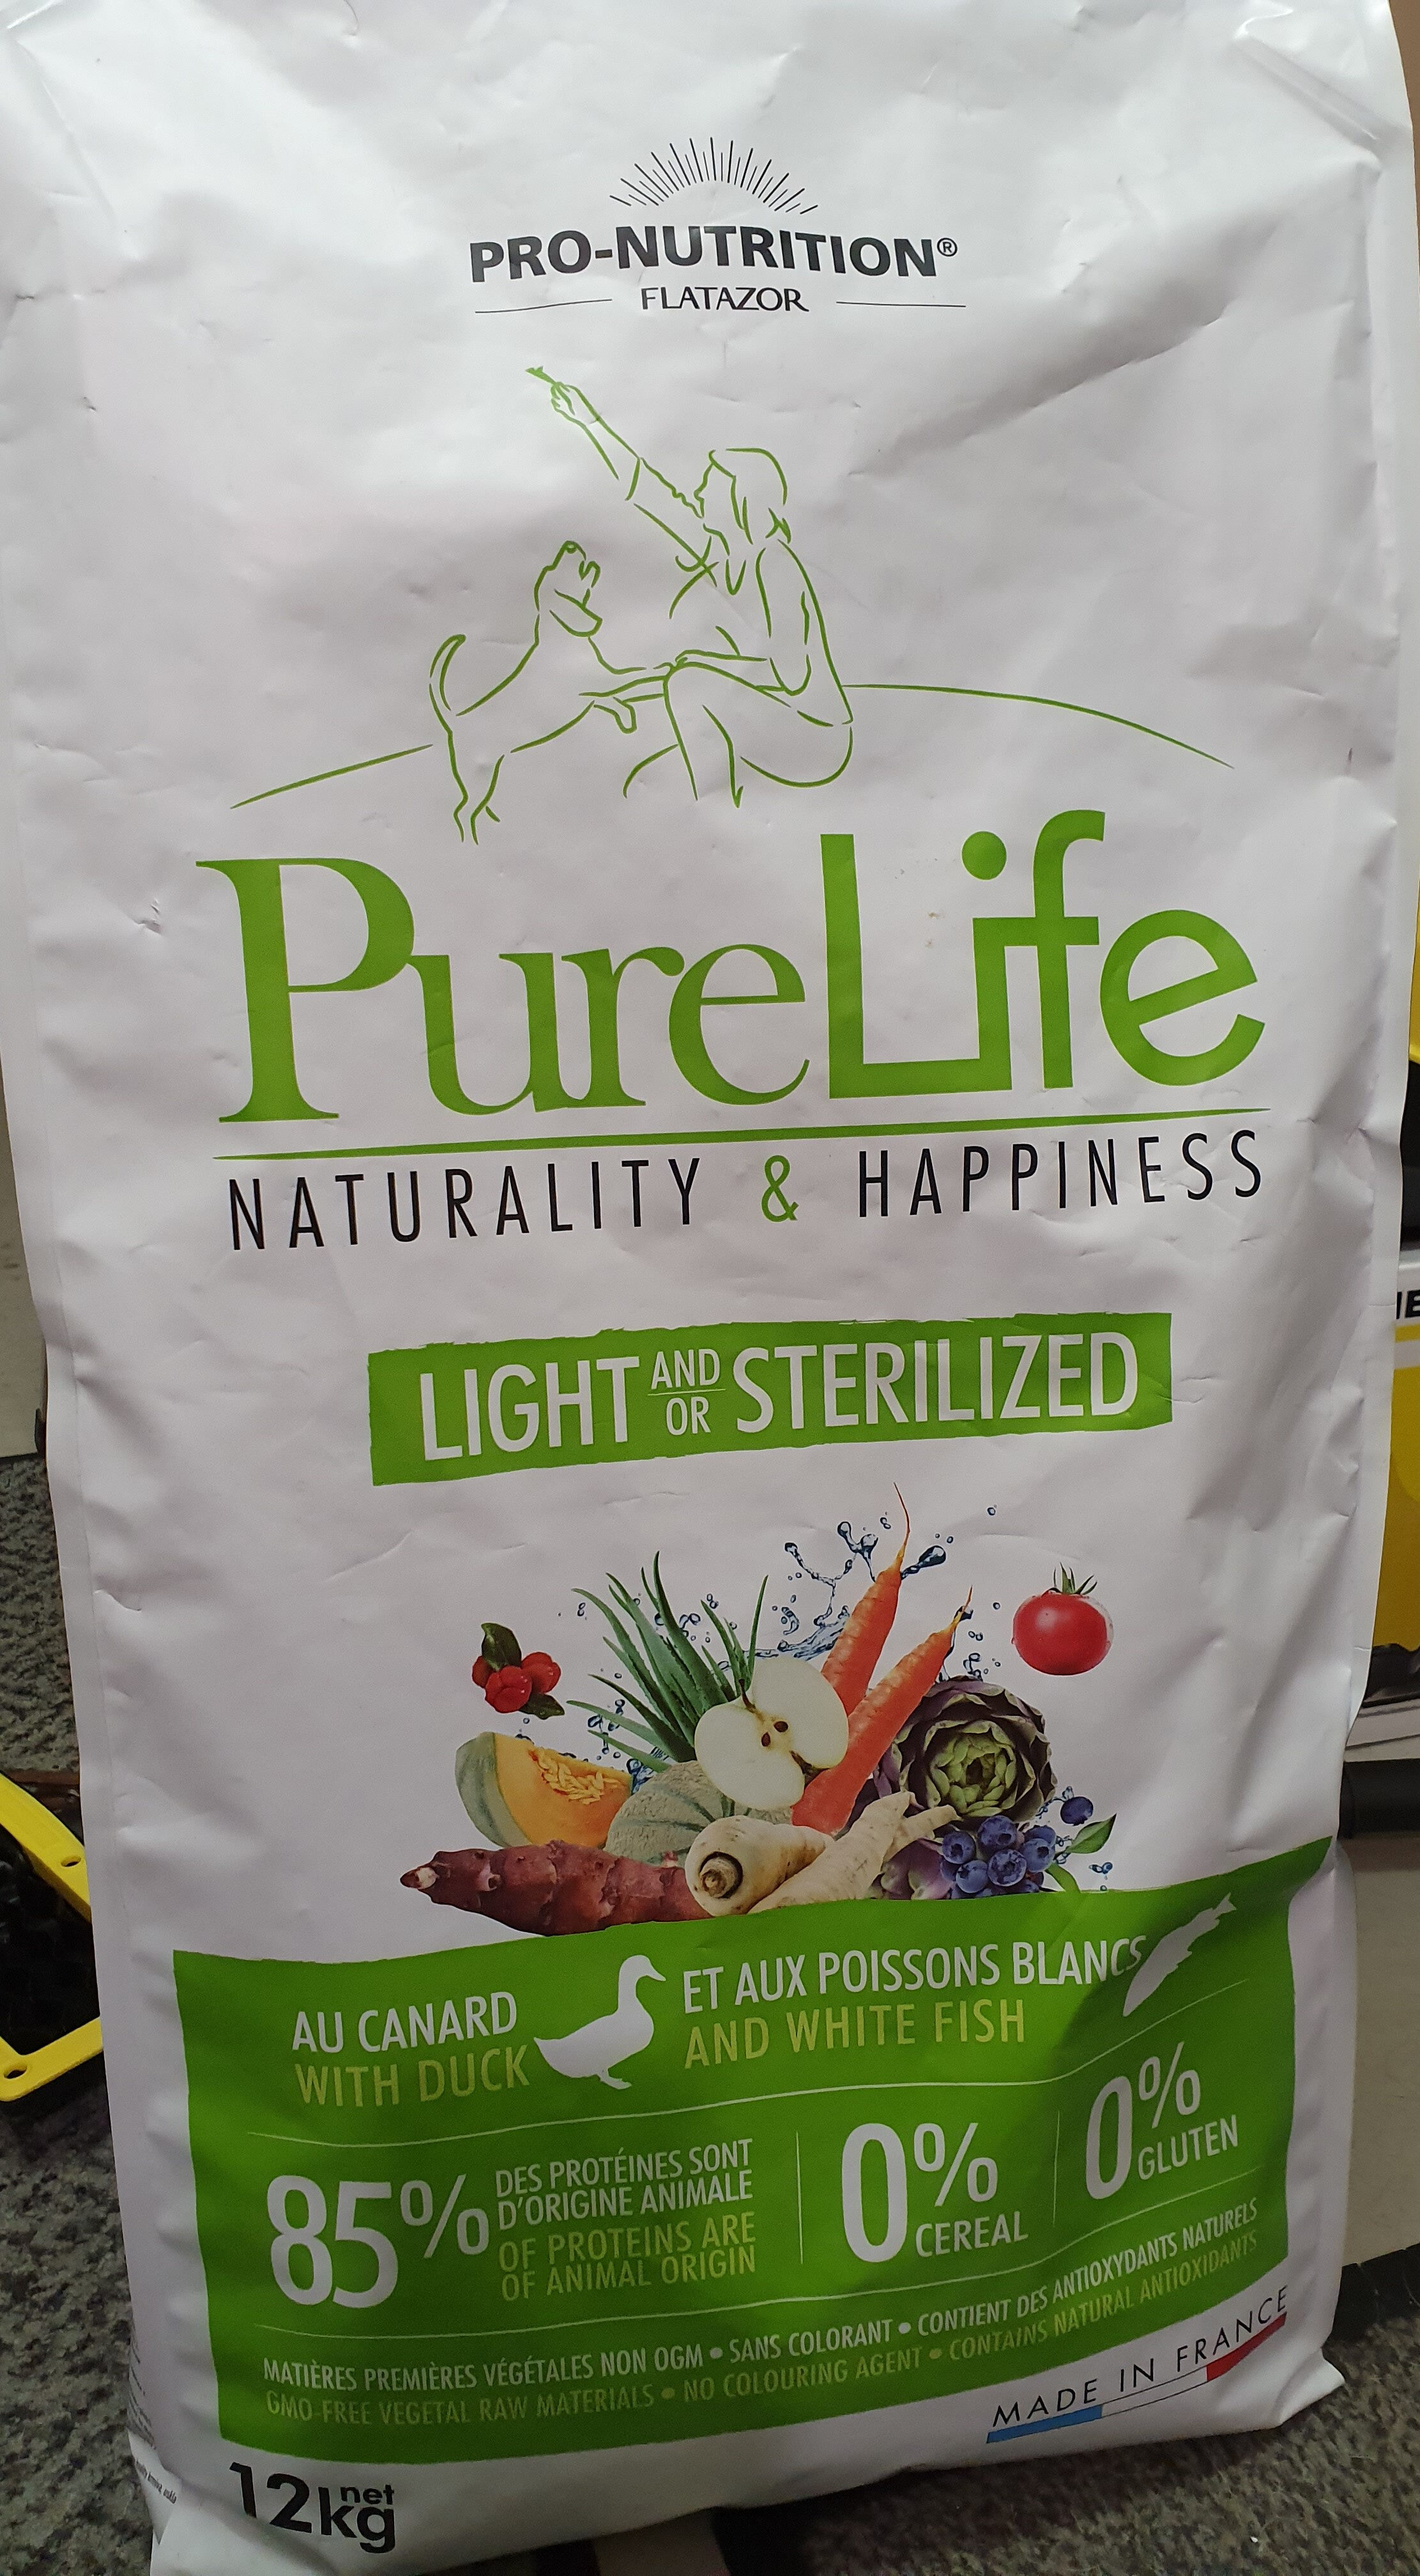 PureLife Naturality & Happiness Light ans sterilized - Product - en